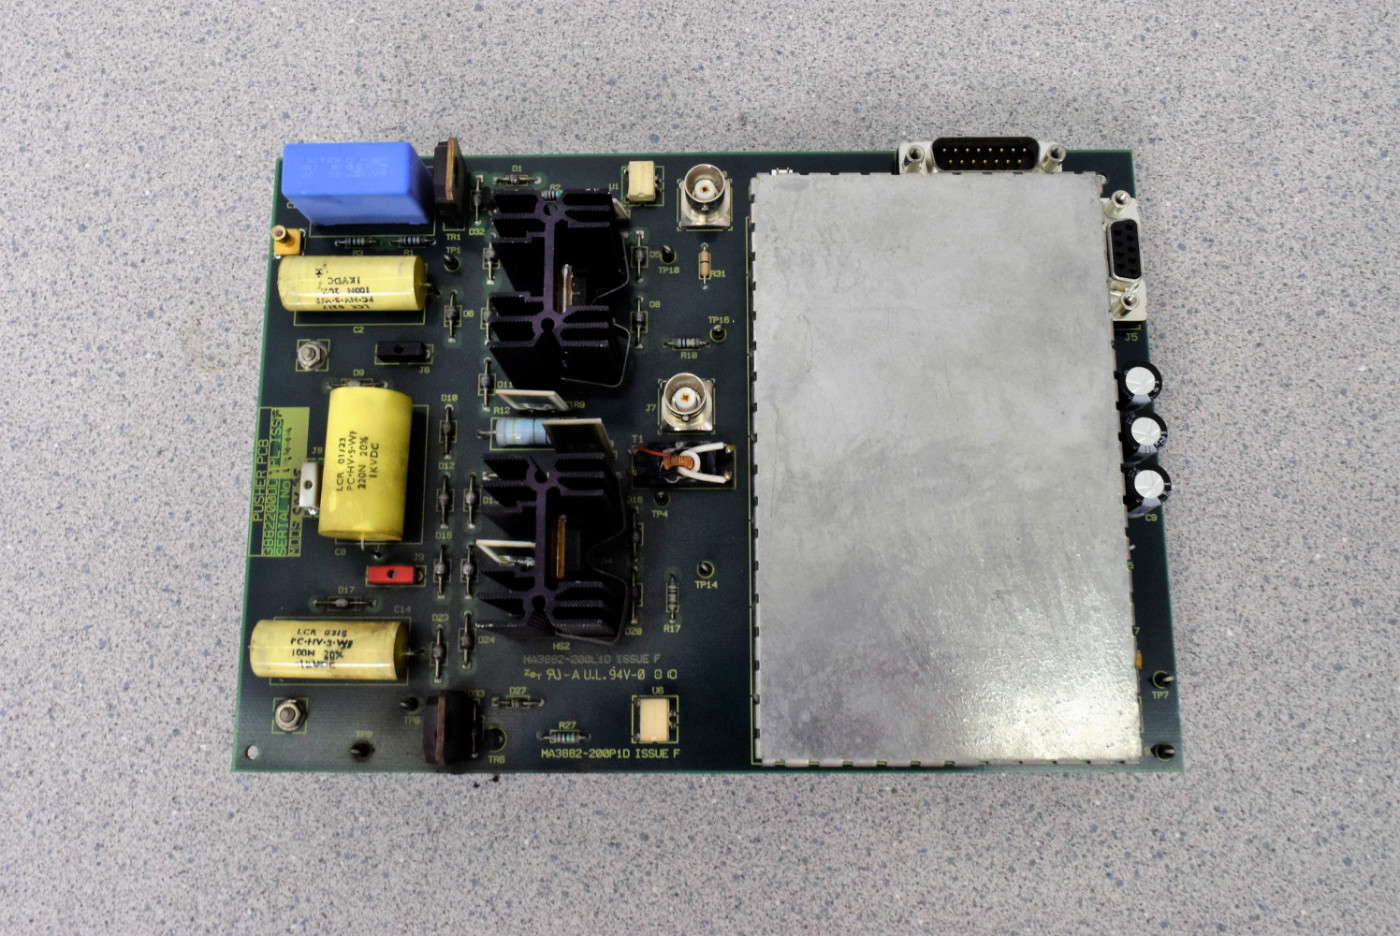 Details about Waters Micromass Assy No  3882200DC1PL Pusher PCB from Ultima  Mass Spec